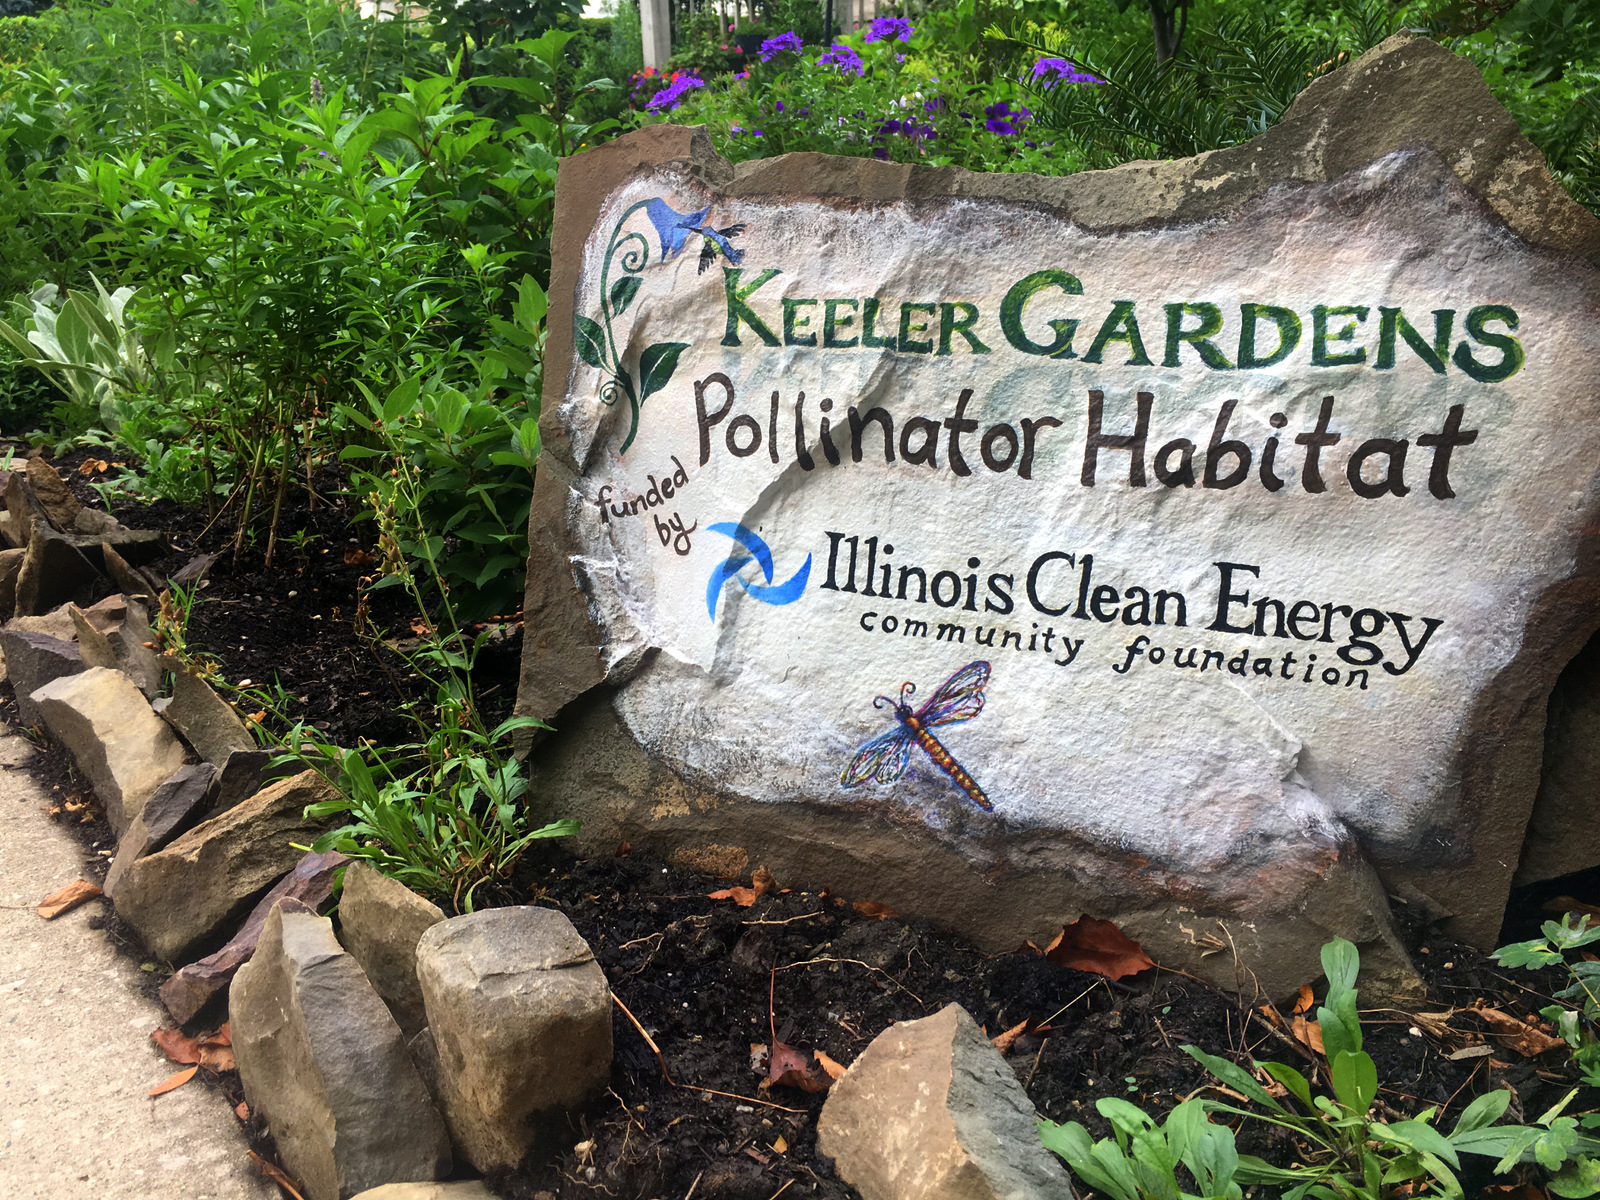 A piece of flat rock is painted with both the Keeler Gardens and Illinois Clean Energy Foundation logos at the start of the pollinator habitat. Painted by In a Jungle, with humming bird, dragon fly, and flower. In the background beautiful purple petunias and verbena appear behind the sign.